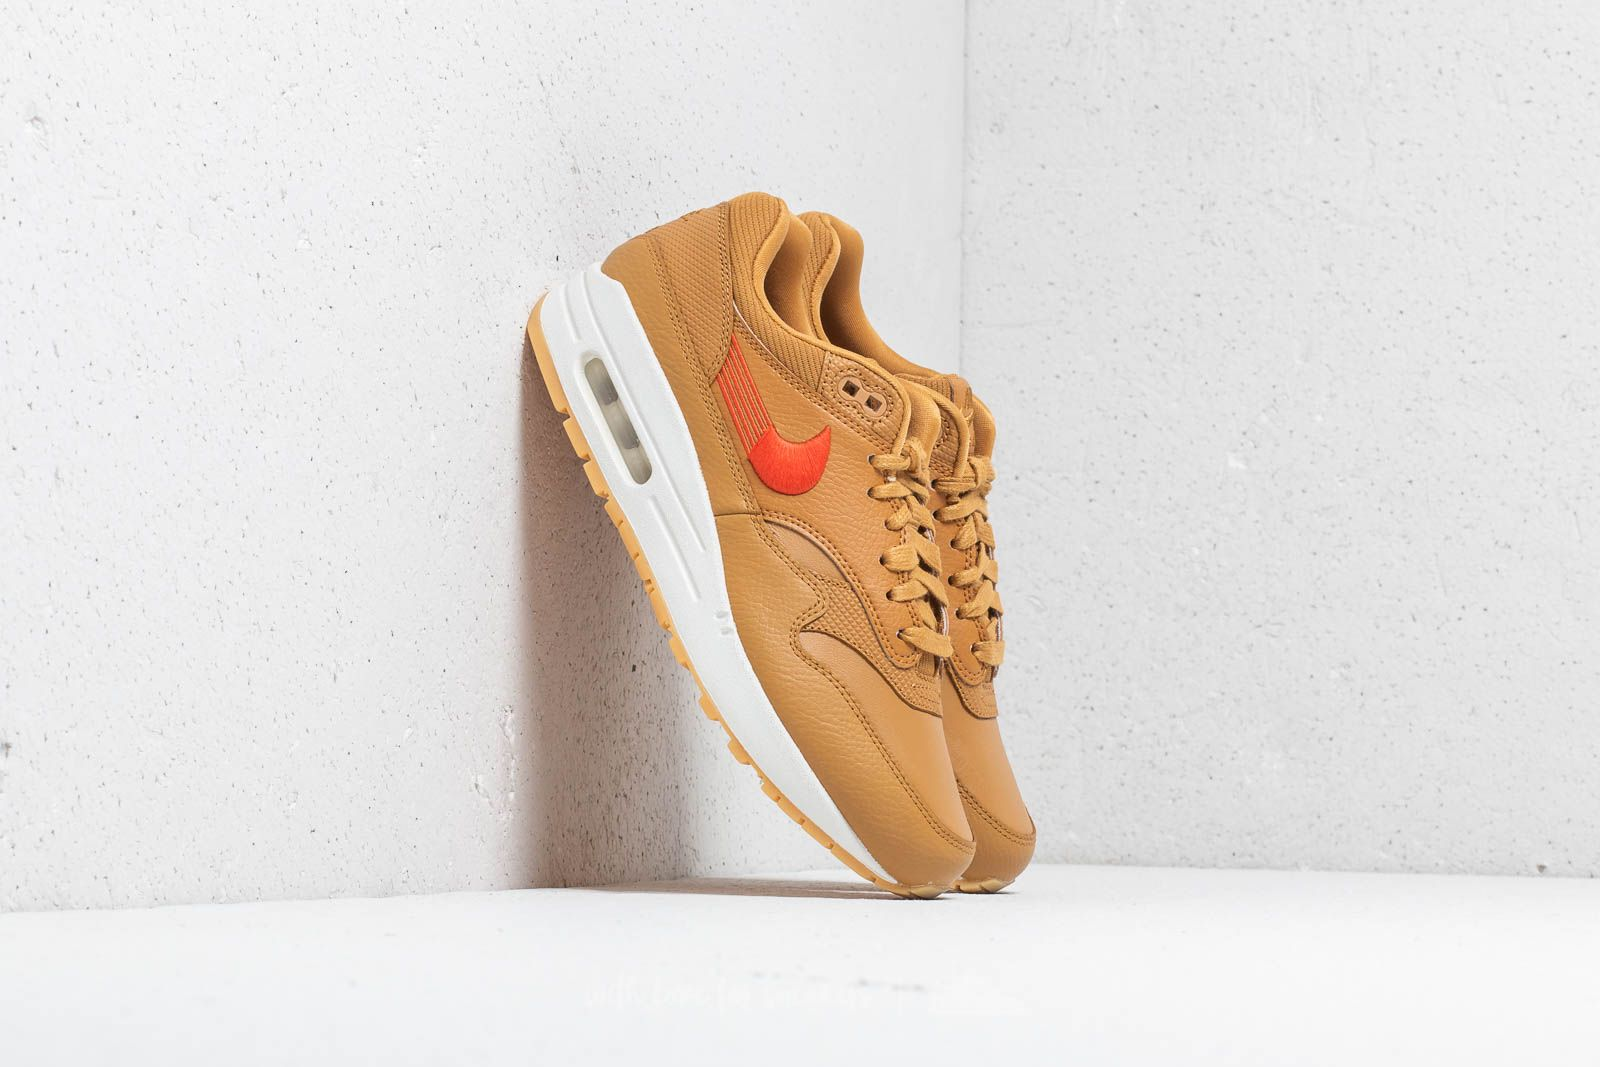 d504a34805 Nike Wmns Air Max 1 Premium Wheat/ Team Orange-Gum Yellow at a great